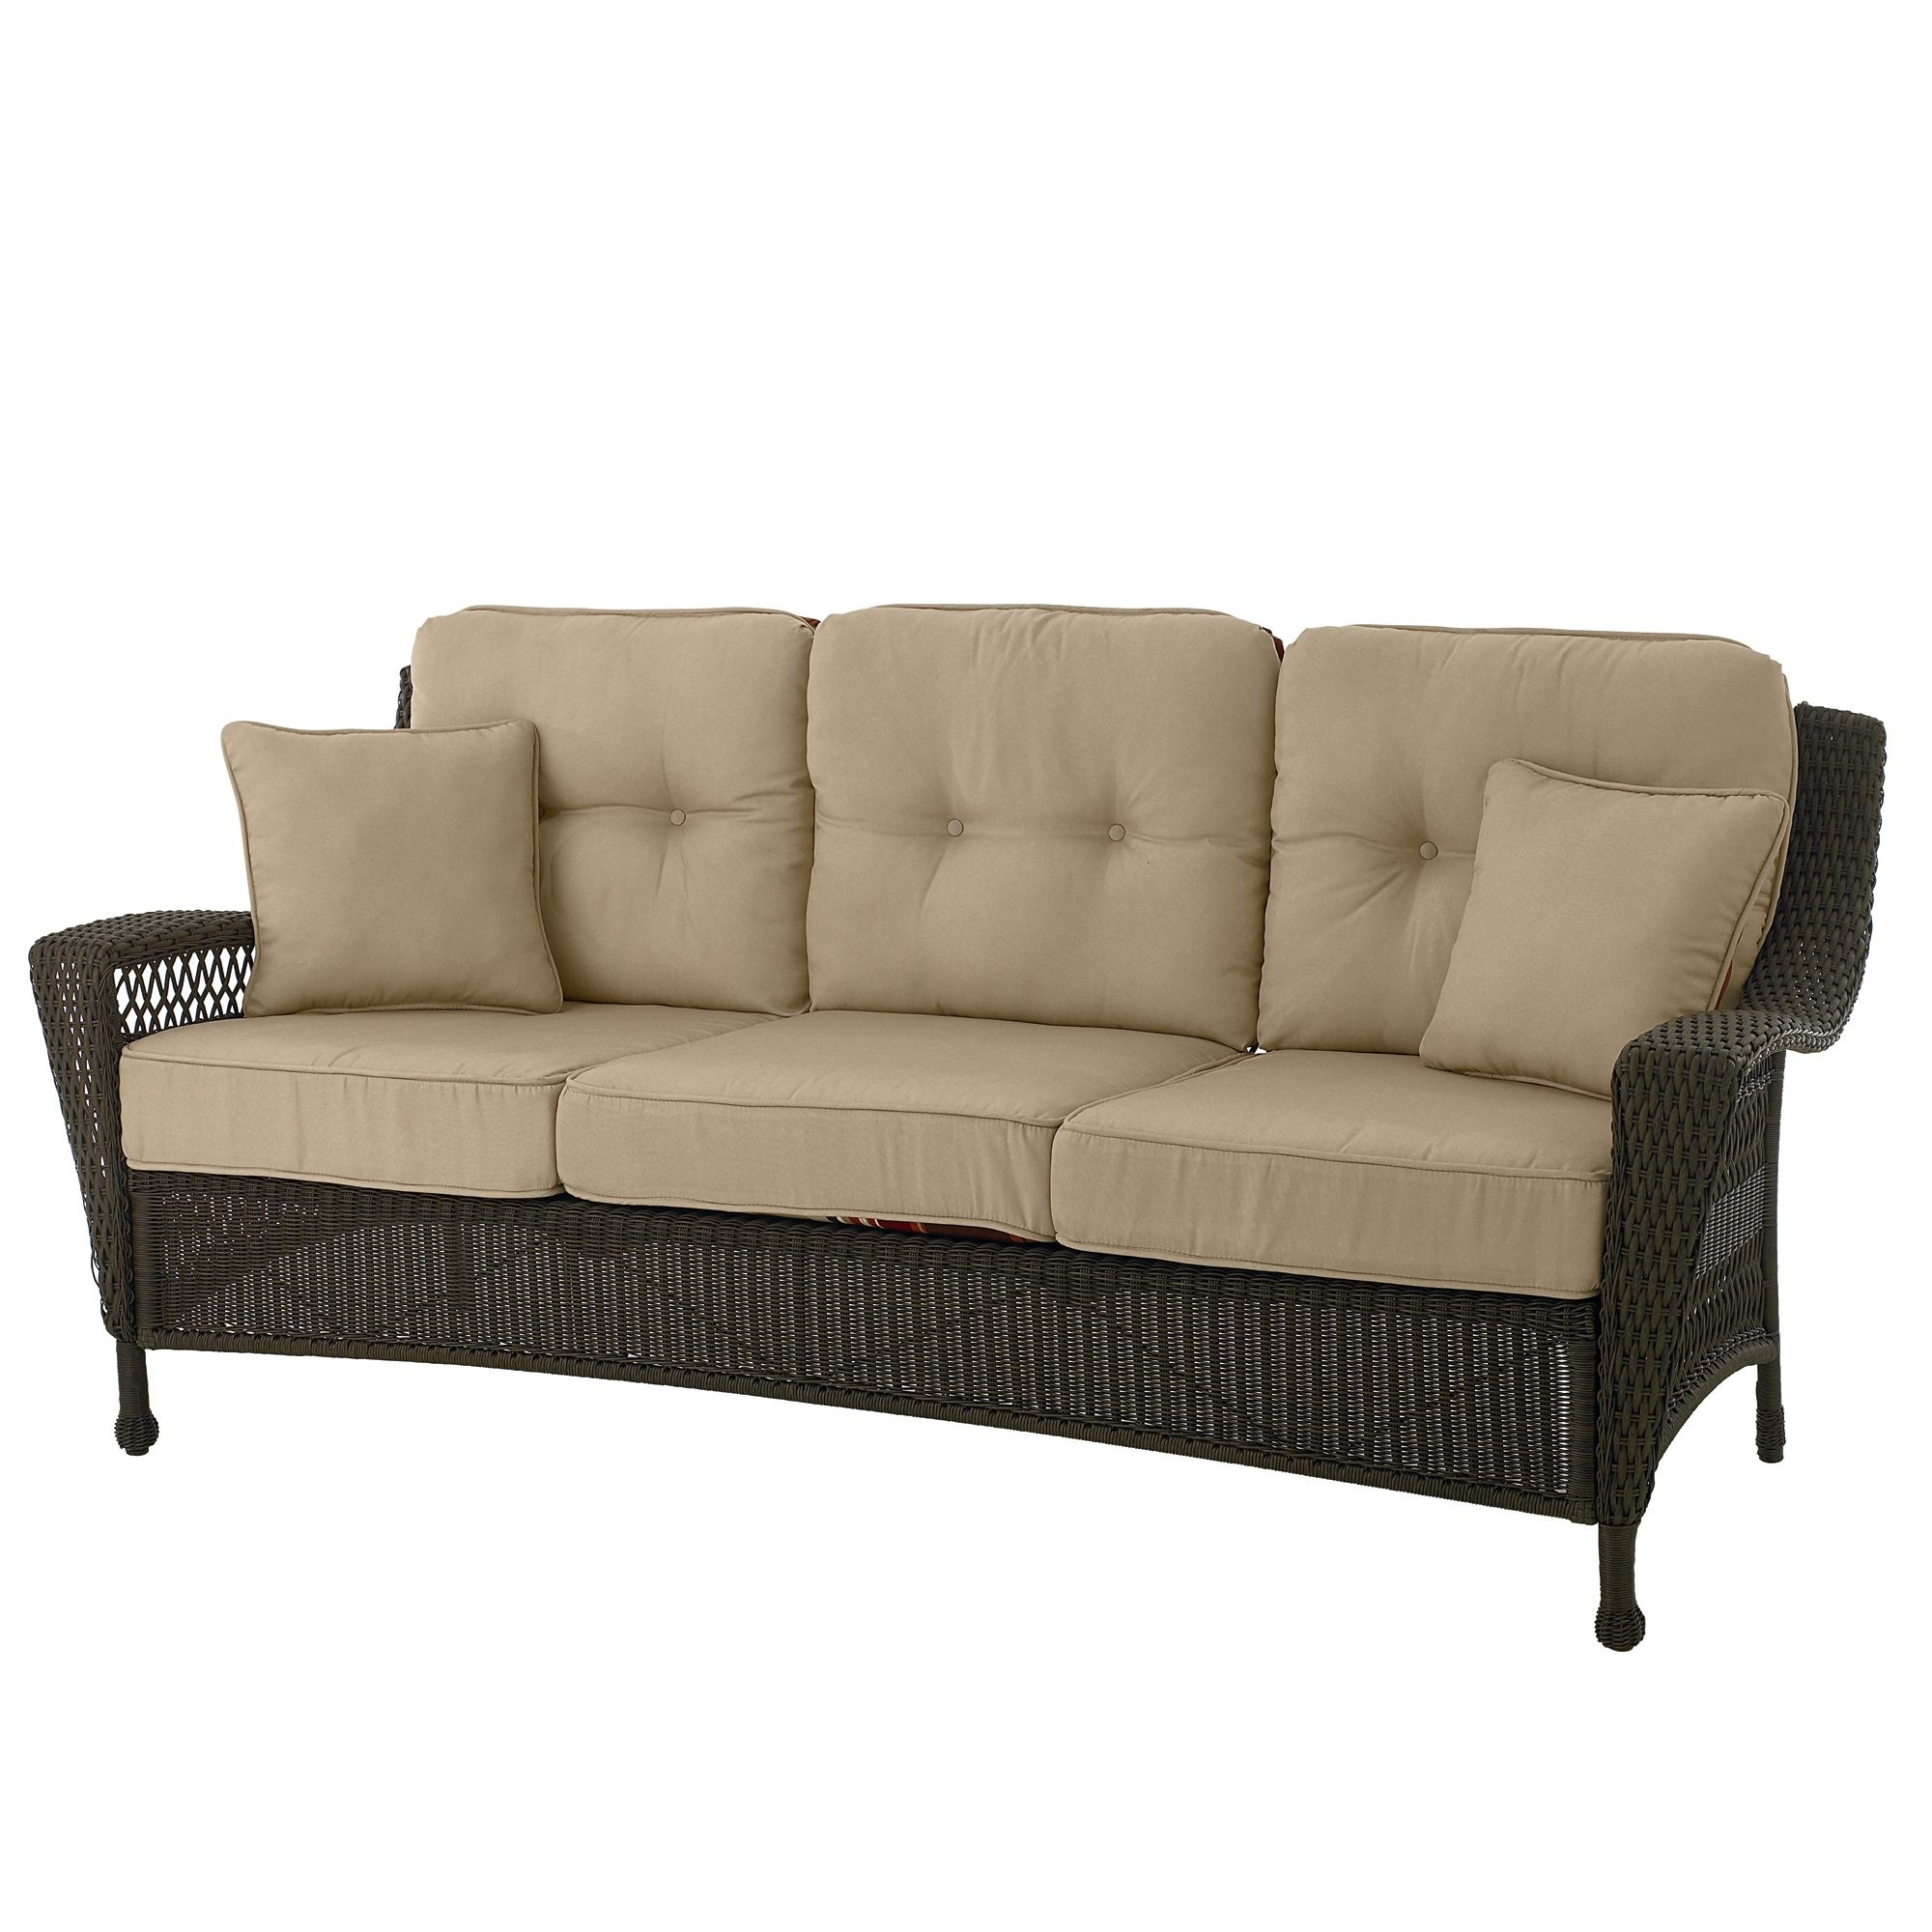 Country Living Concord 3 Seat Patio Sofa - Outdoor Living ...